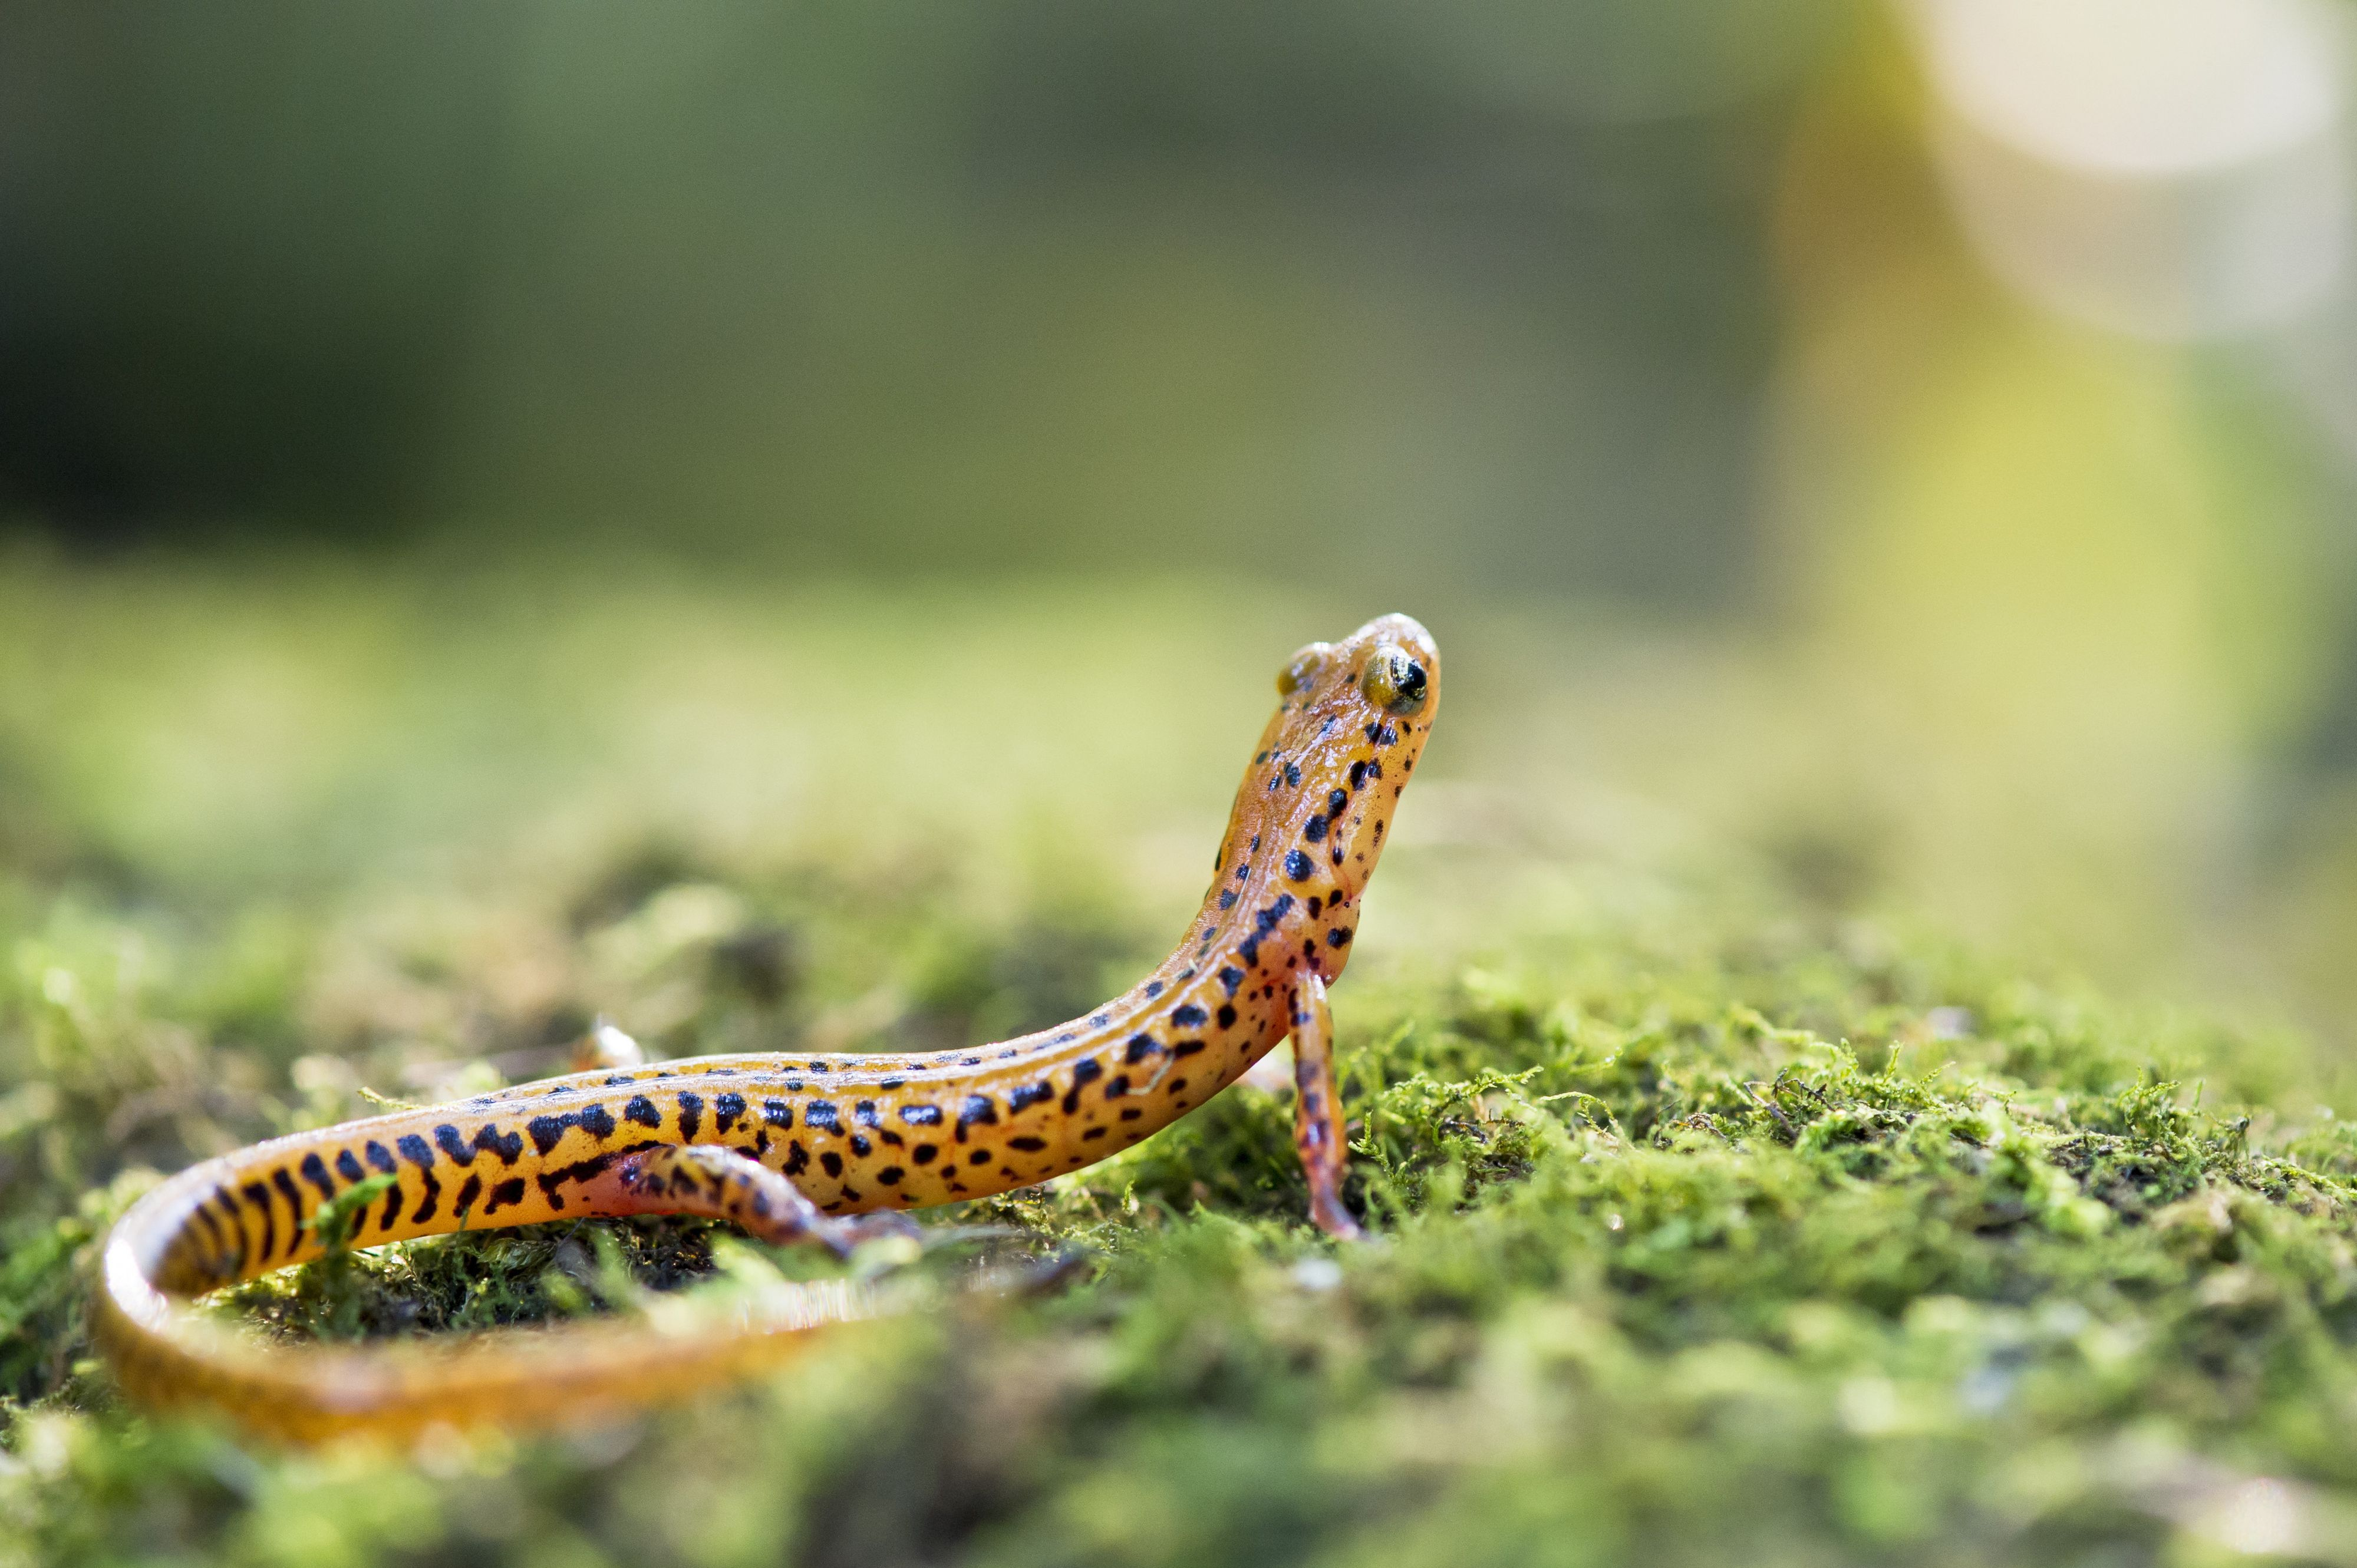 A long-tailed salamander sitting on a mossy rock.